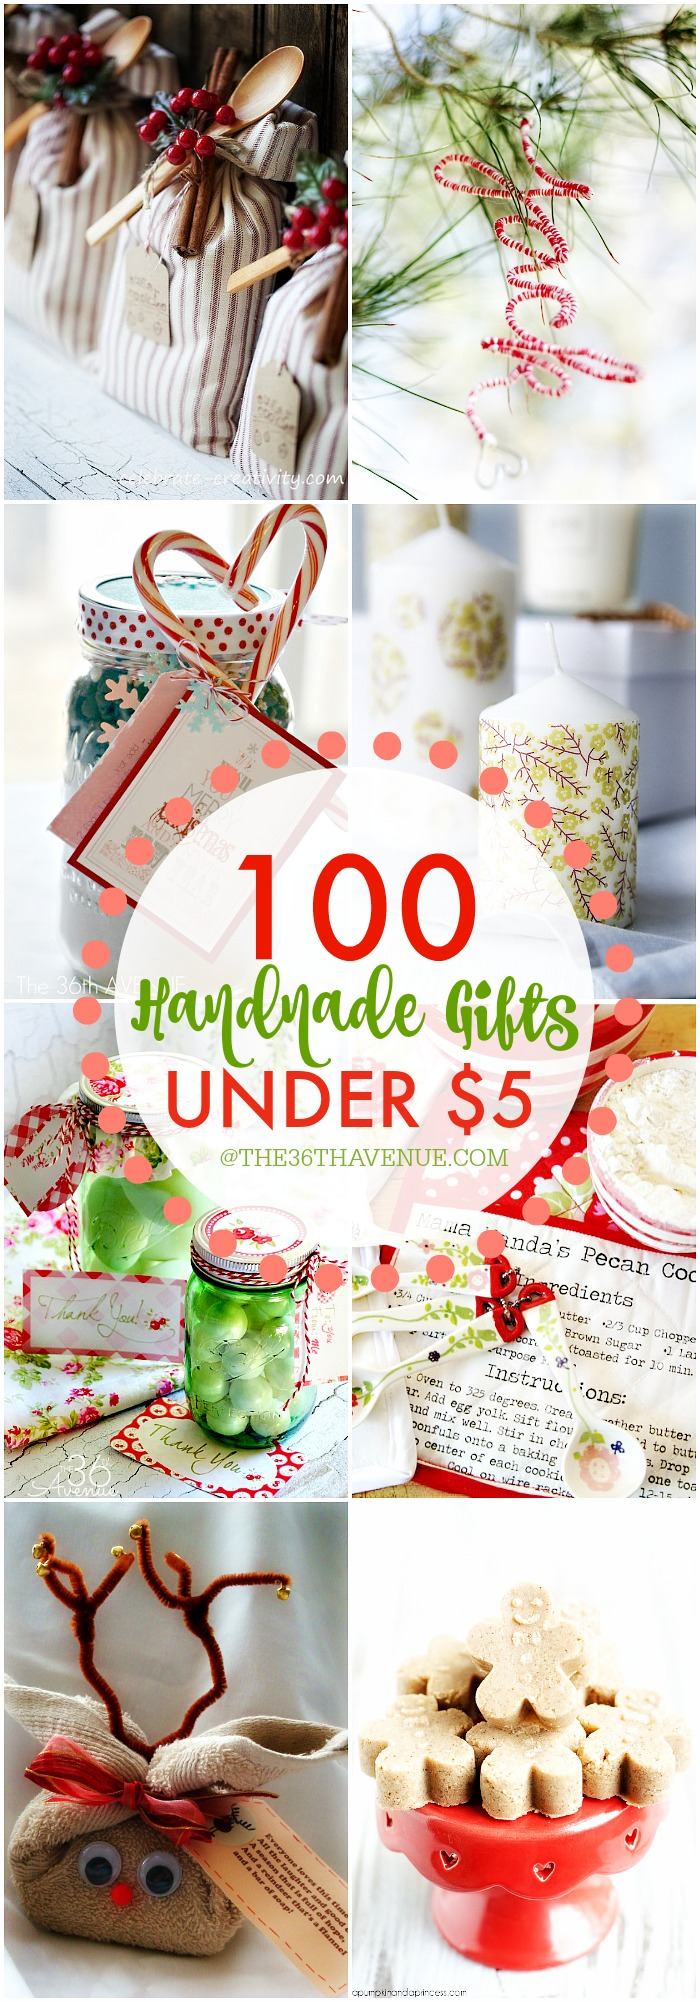 100 Handmade Gifts Under Five Dollars at the36thavenue.com